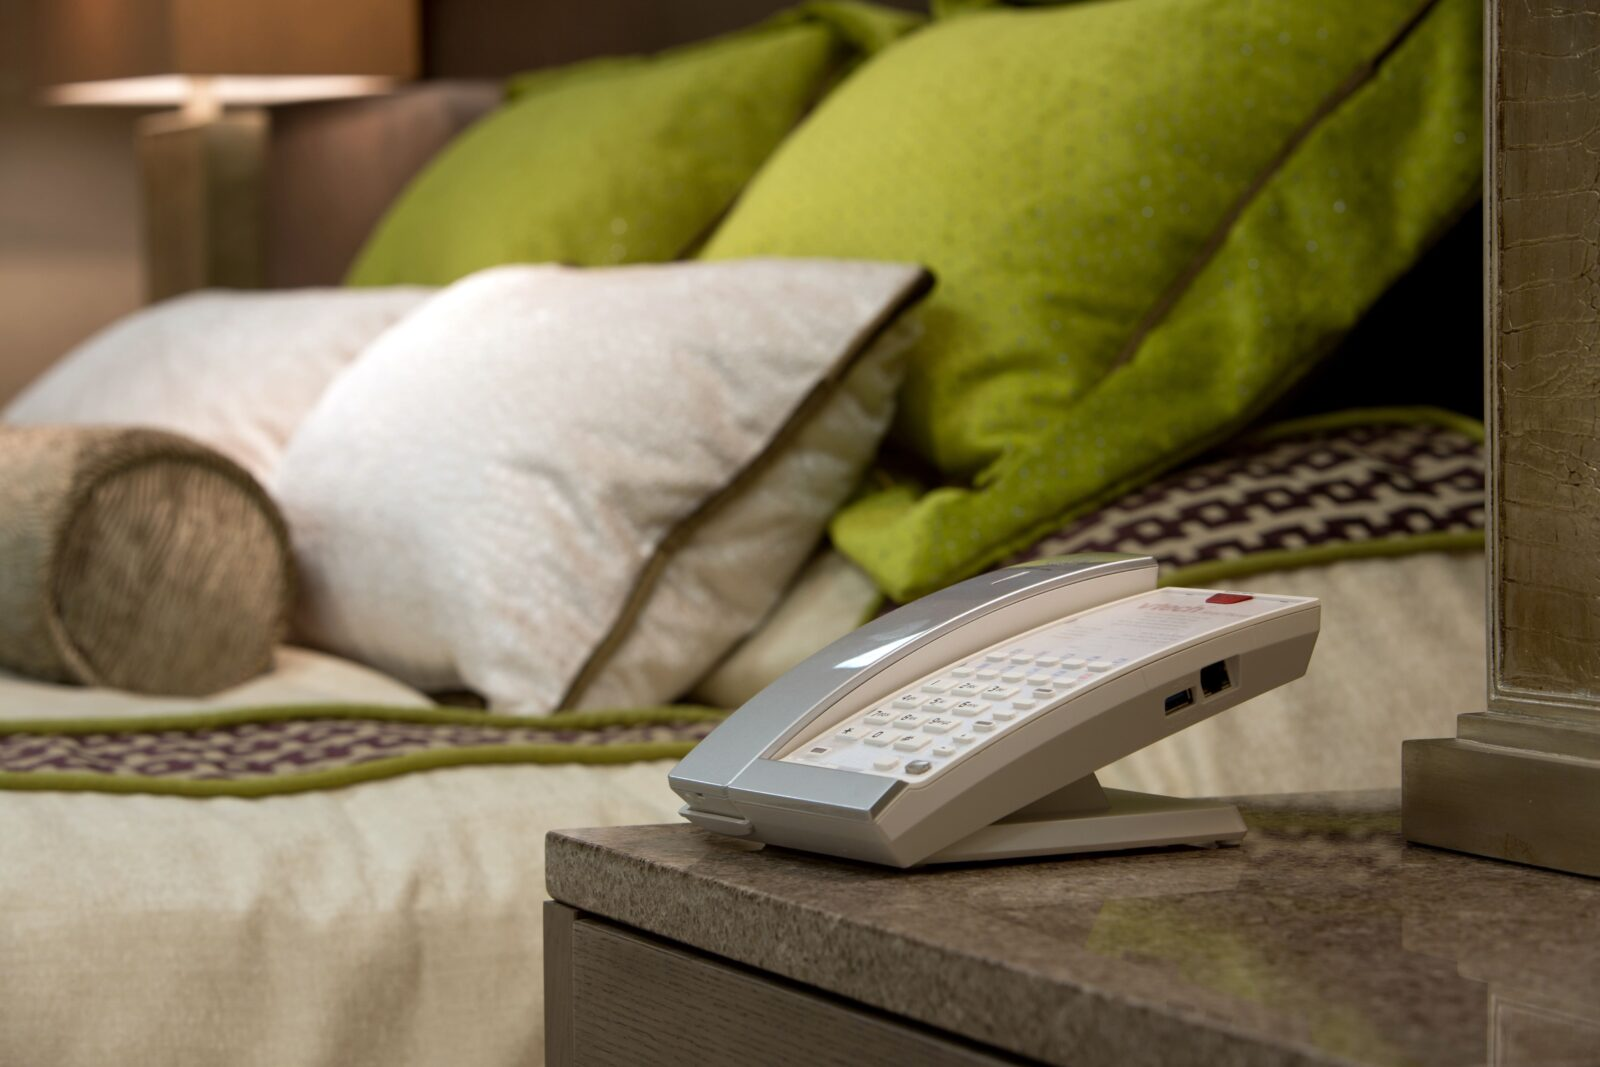 VTech SIP Hotel Phone with new three year warranty in a stylish hotel room.